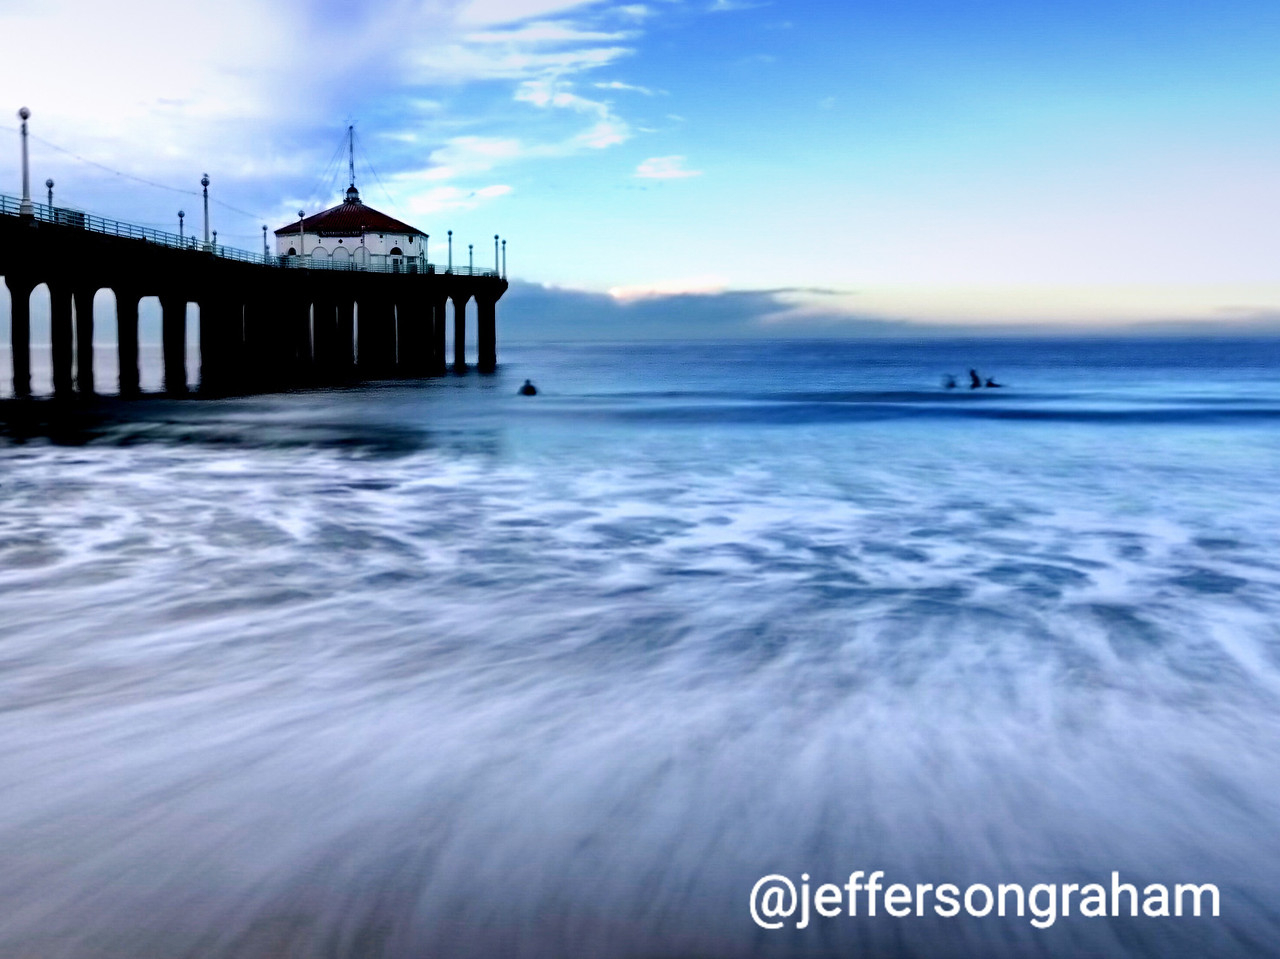 More long exposure tricks on the iPhone, looking out at the Manhattan Beach Pier, with flowing water